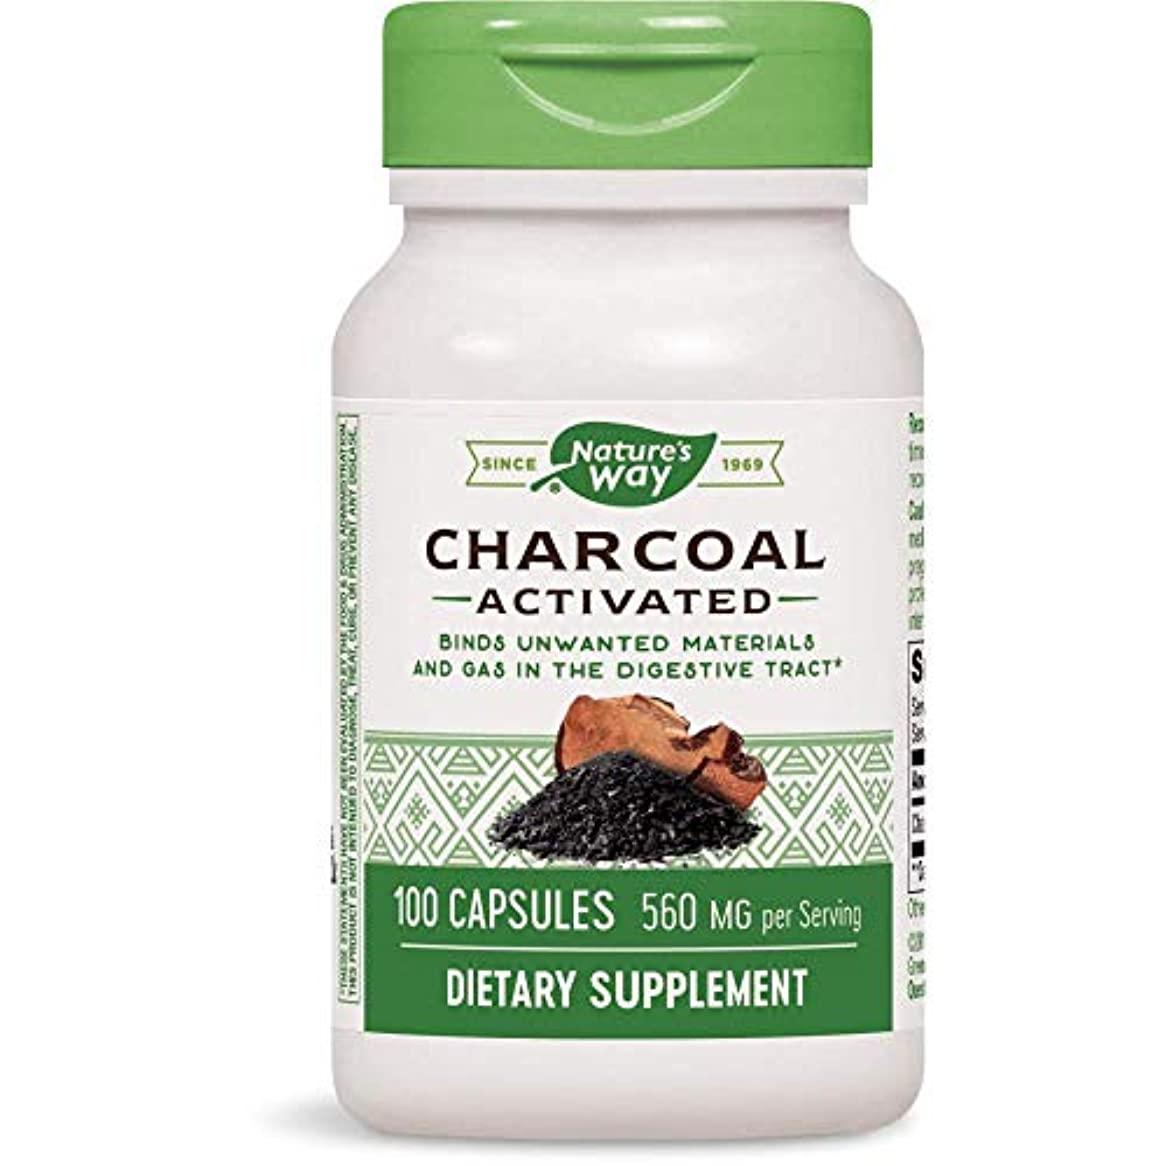 社交的完全にスツール海外直送品Nature's Way Charcoal, Activated, 100 Caps 260 MG(Pack of 3)